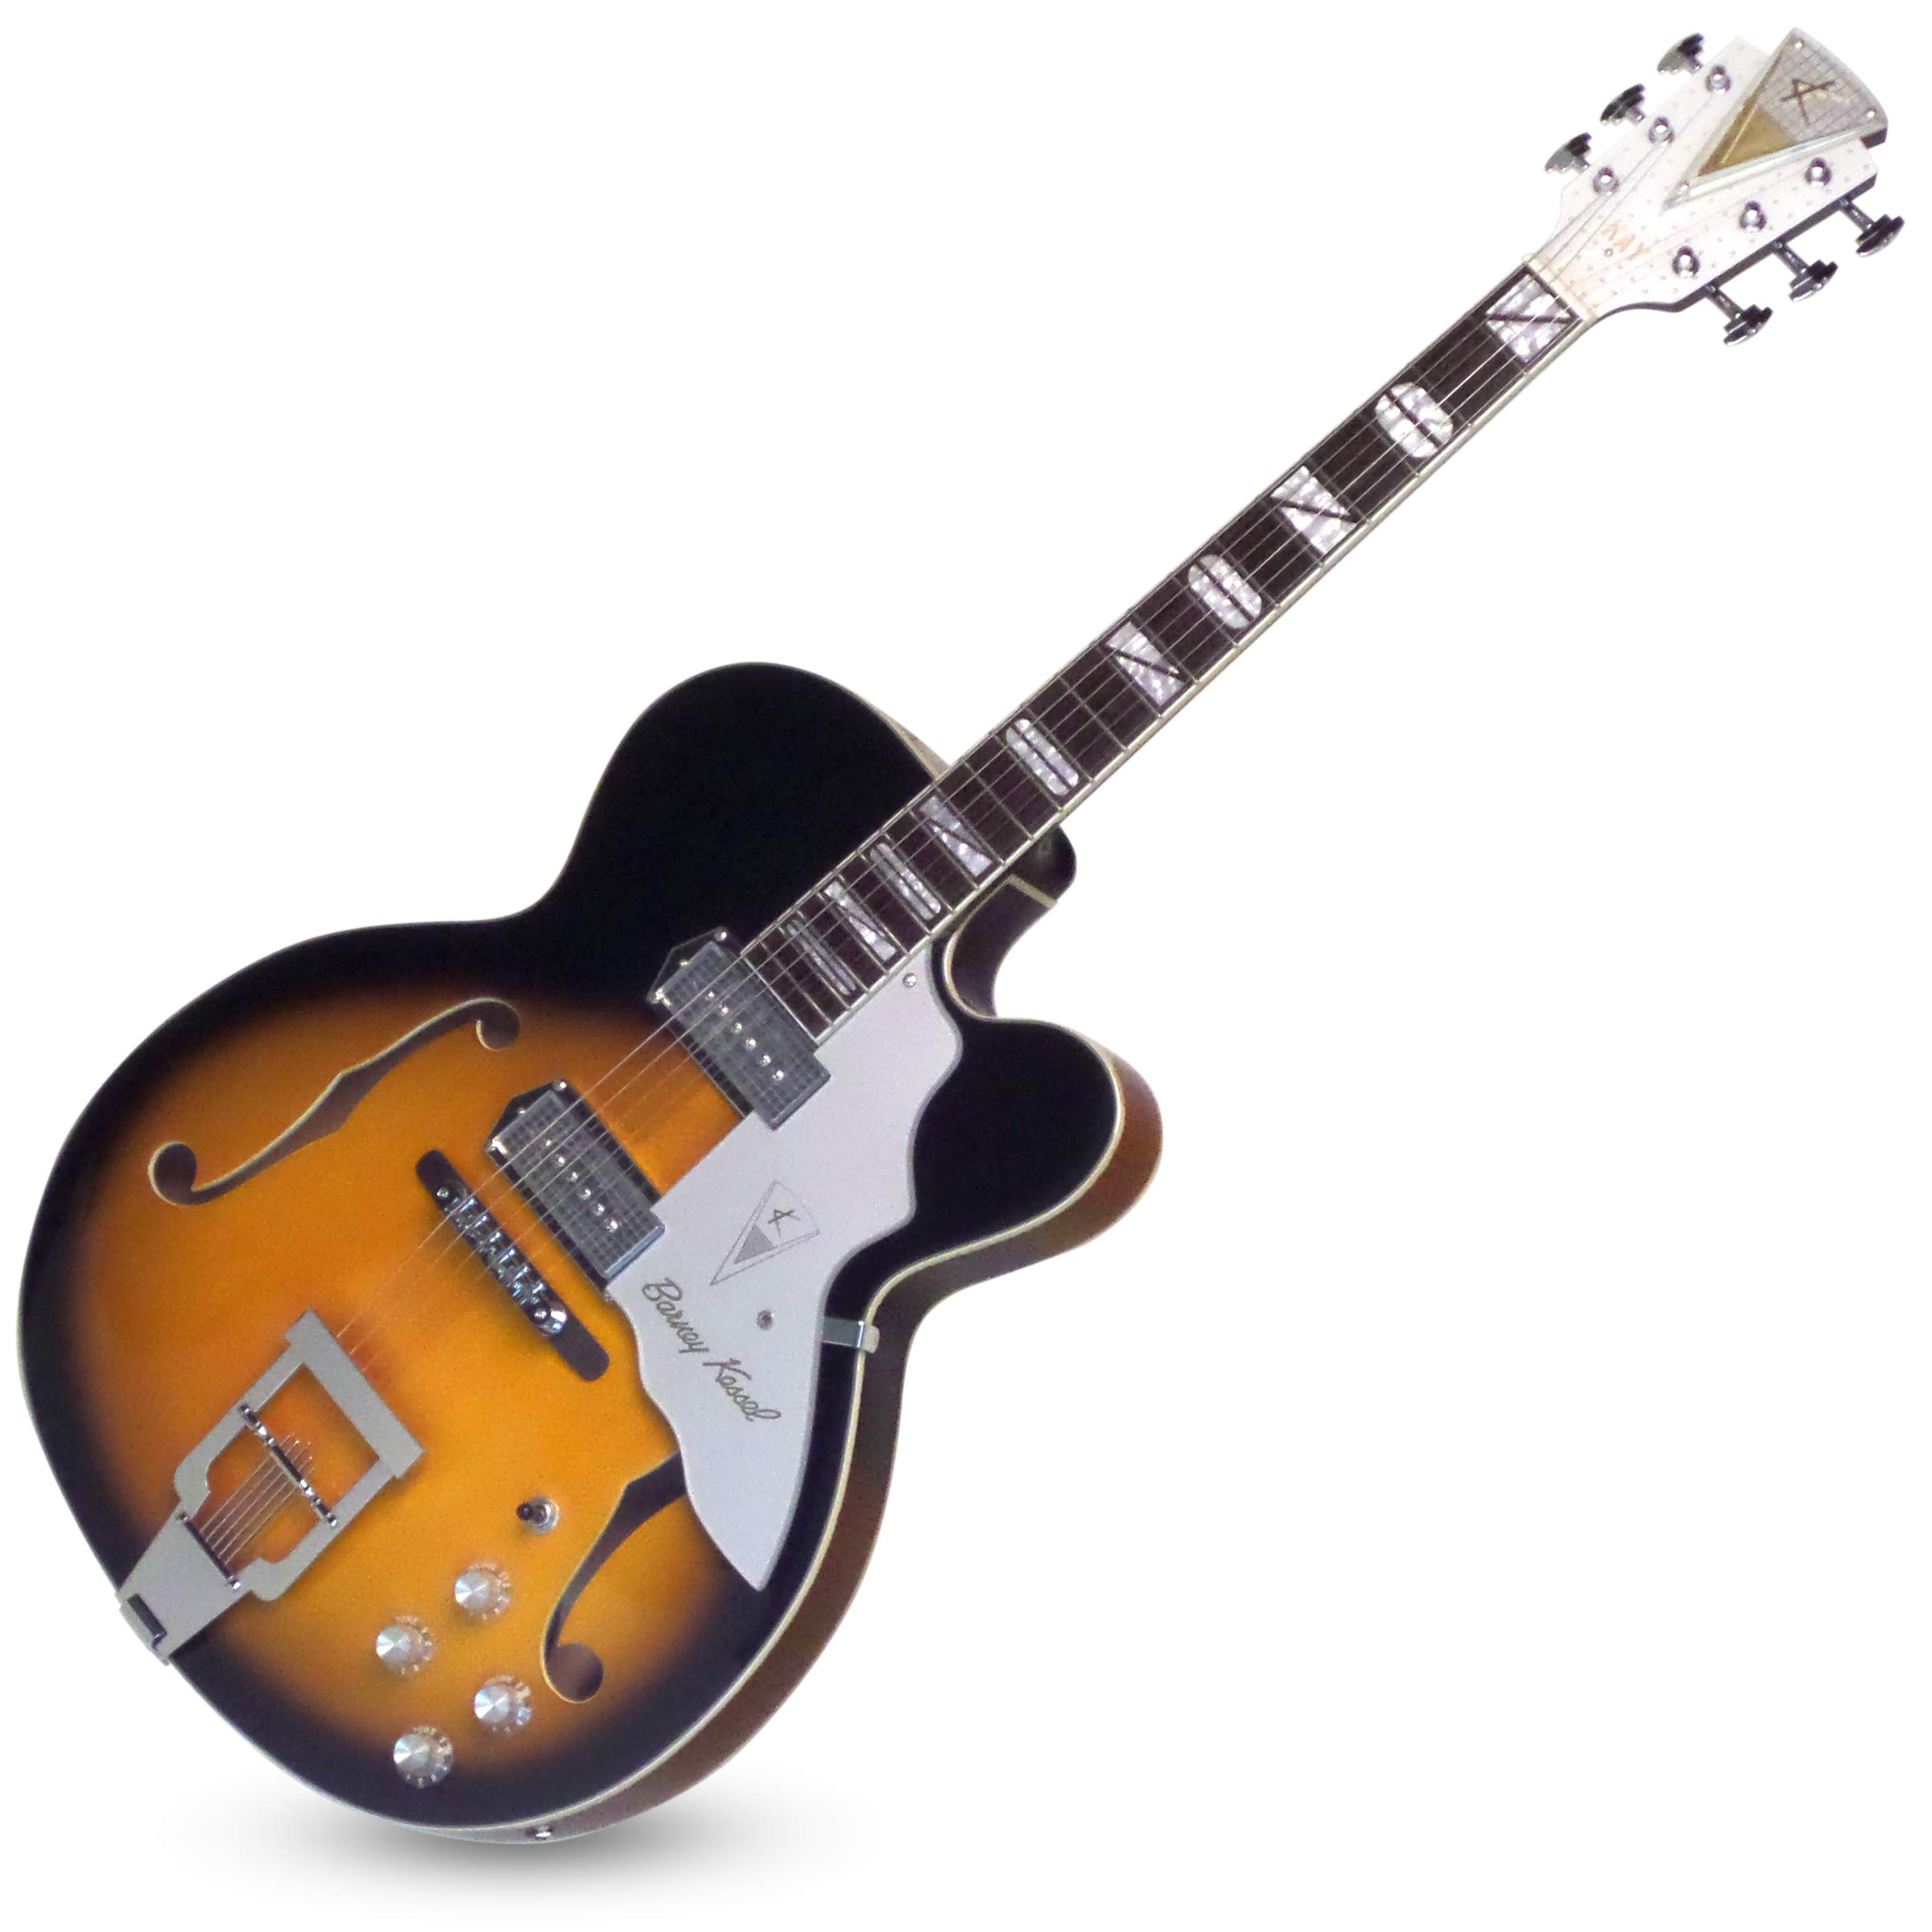 Cheap Kay Reissue 1957 Barney Kessel Jazz Special Electric Guitar Limited Production Signature Edition & Case - Sunburst (K8700VTS) Black Friday & Cyber Monday 2019